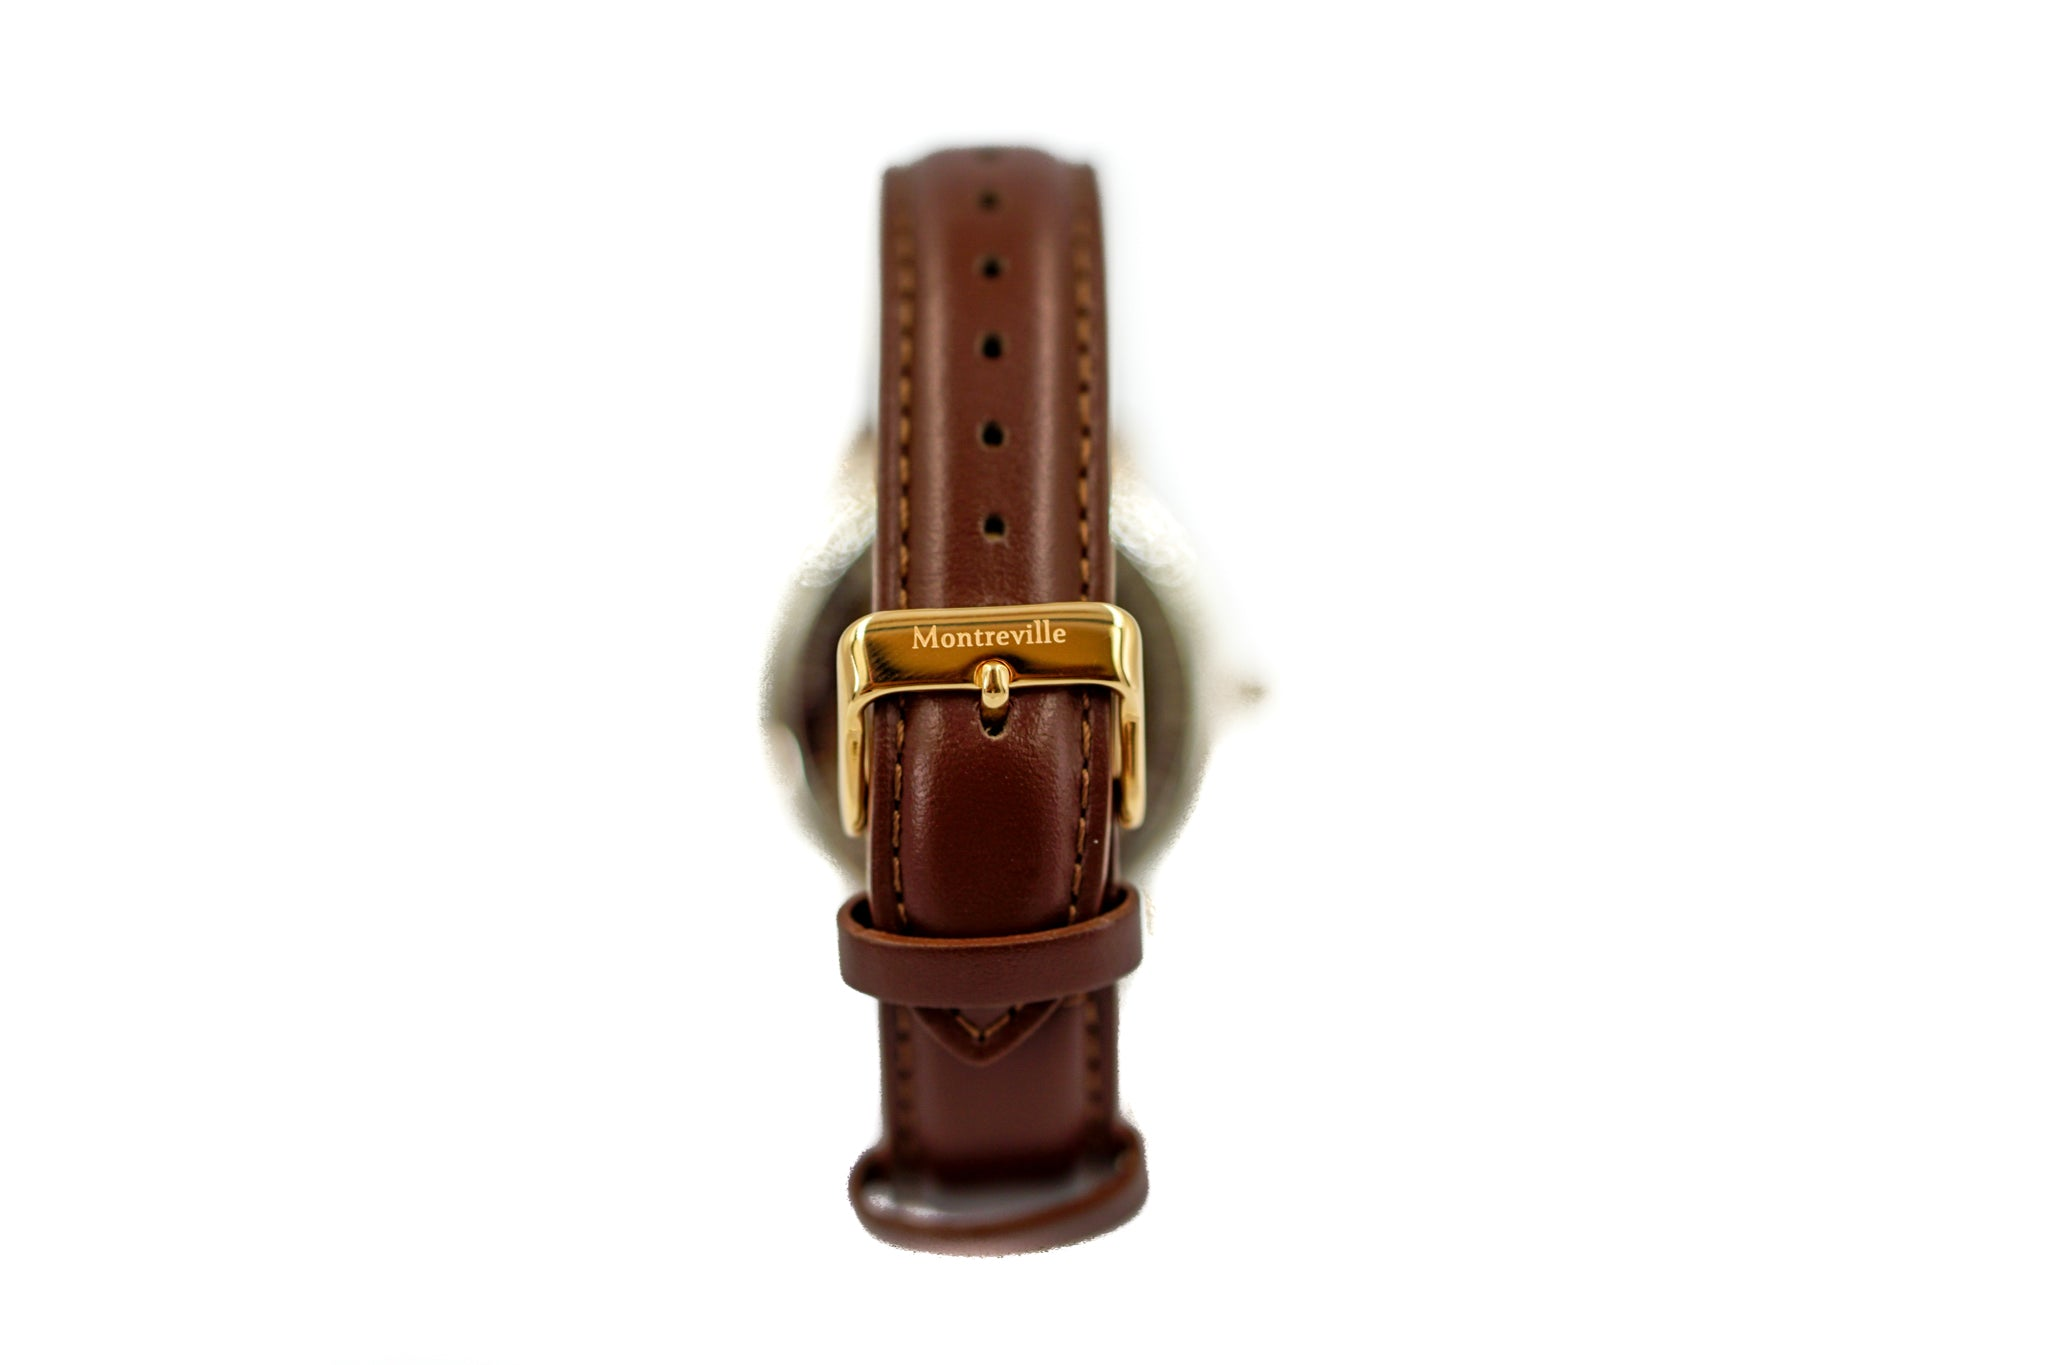 Brown watch called Oslo from the brand Montreville, seen from the back. This is an image of the watch with a white background. The timepiece has an elegant design with a dark brown leather strap.